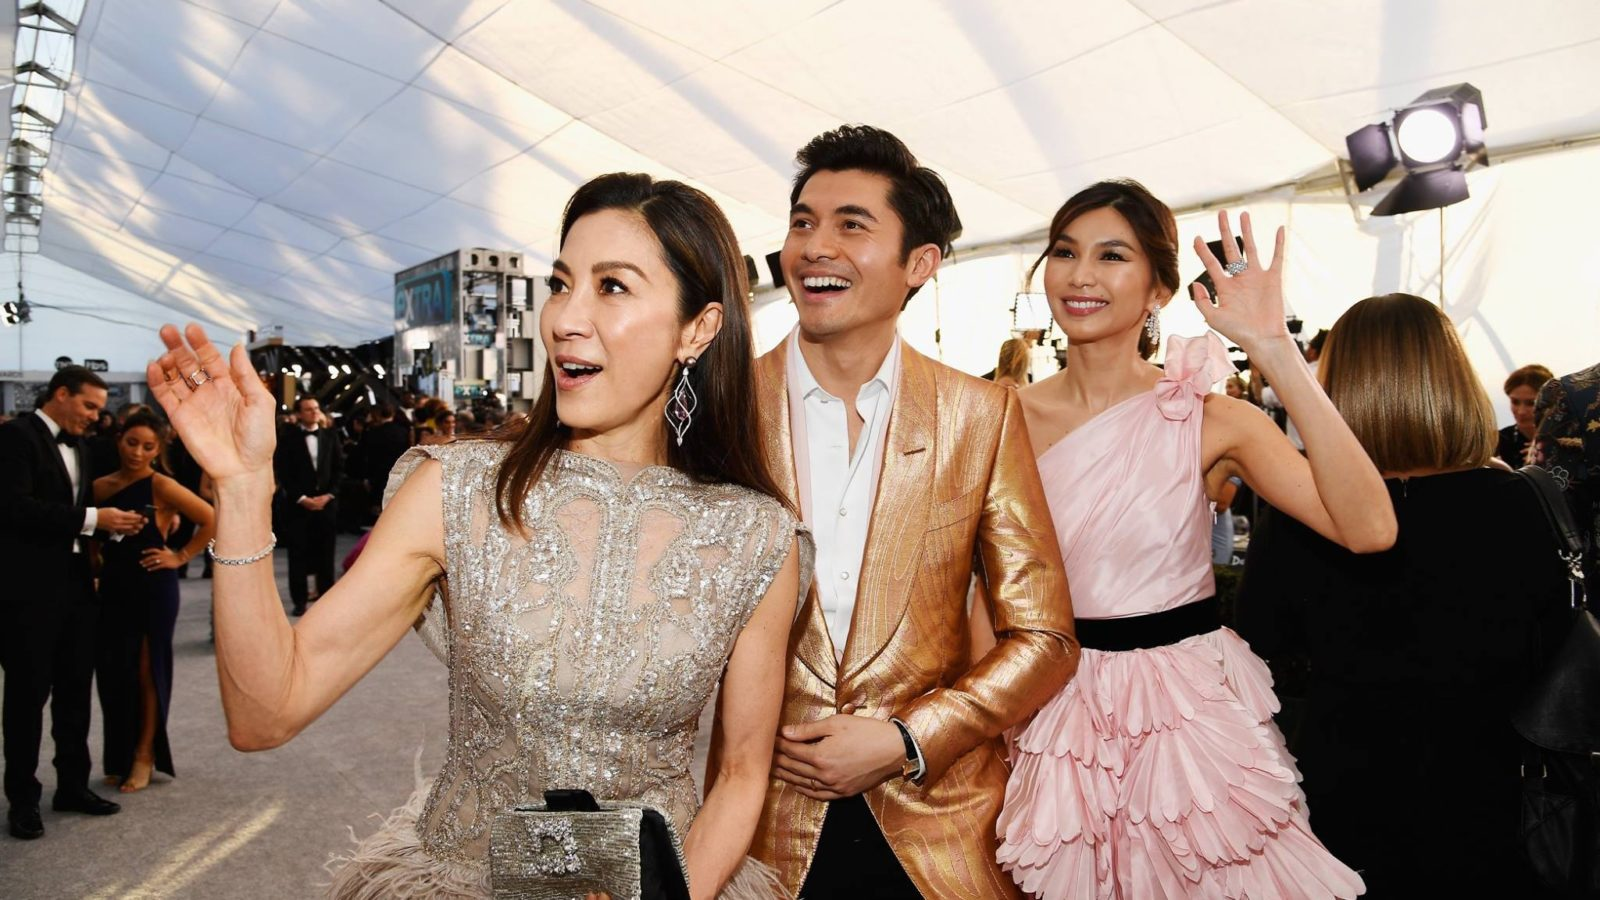 Here's what we know about the new movie by 'Crazy Rich Asians' author Kevin Kwan